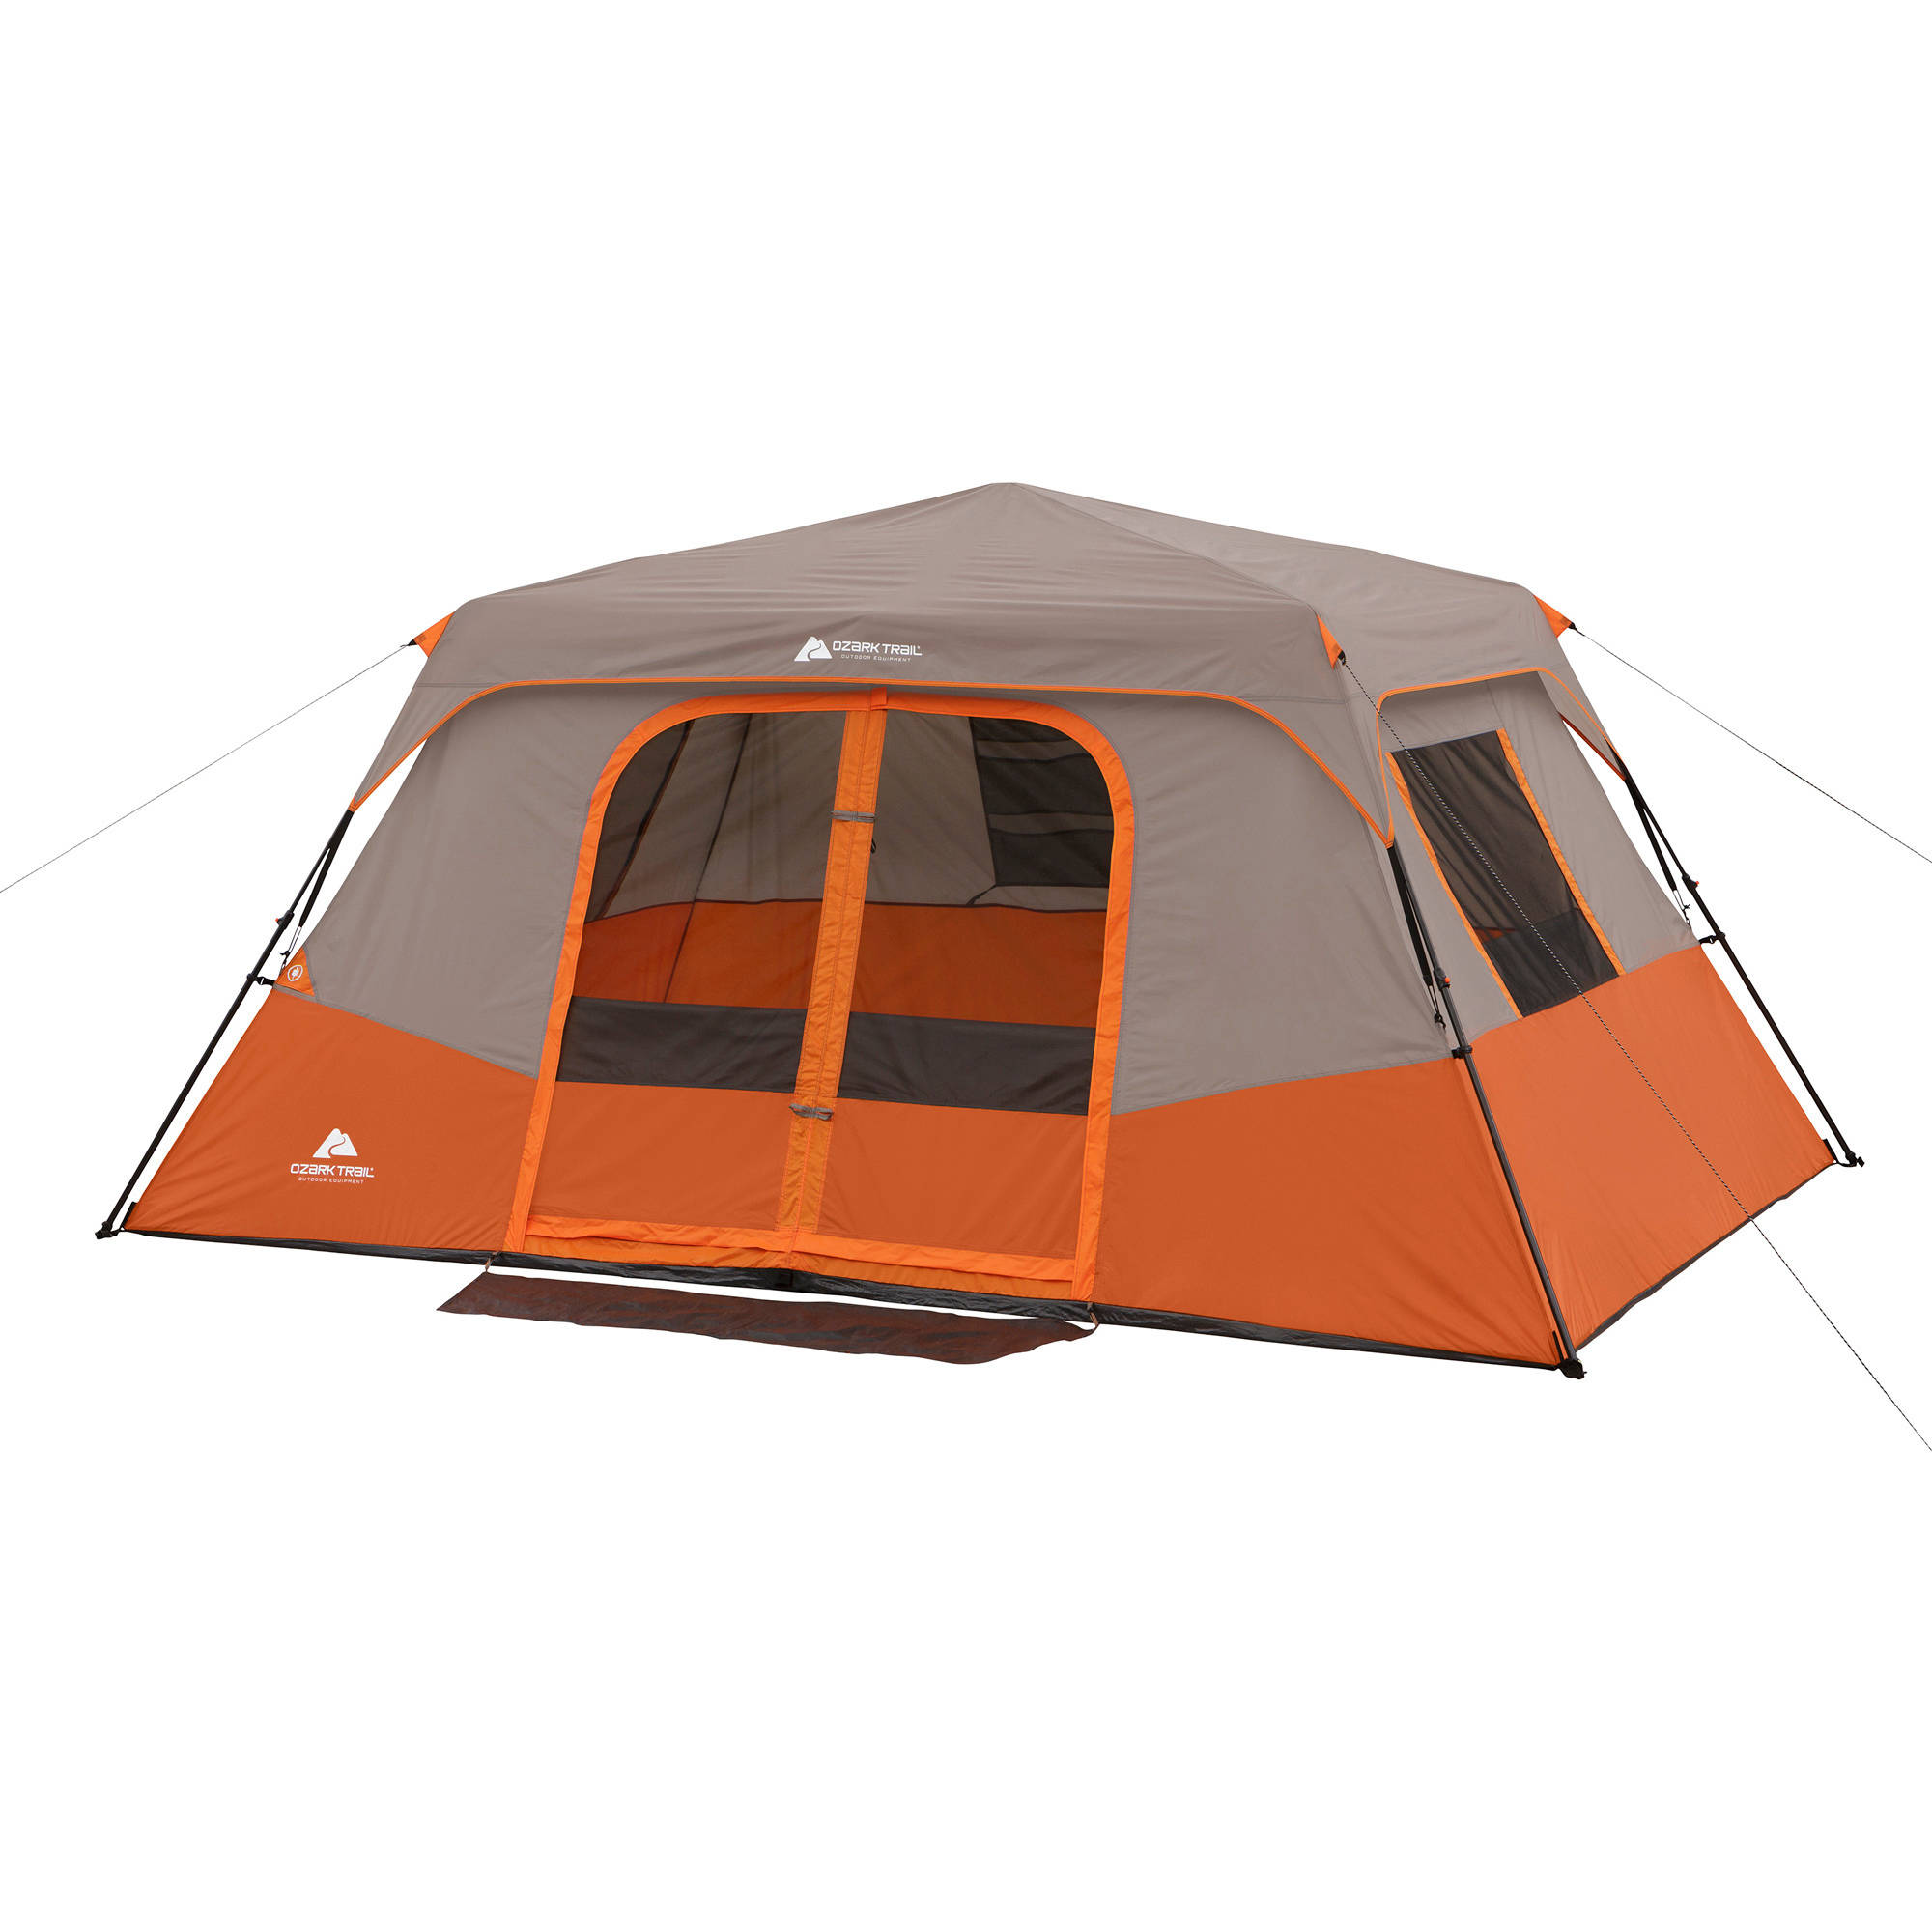 Ozark Trail Instant 13u0027 x 9u0027 Cabin C&ing Tent Sleeps 8  sc 1 st  Walmart : 8 person pop up tent - memphite.com